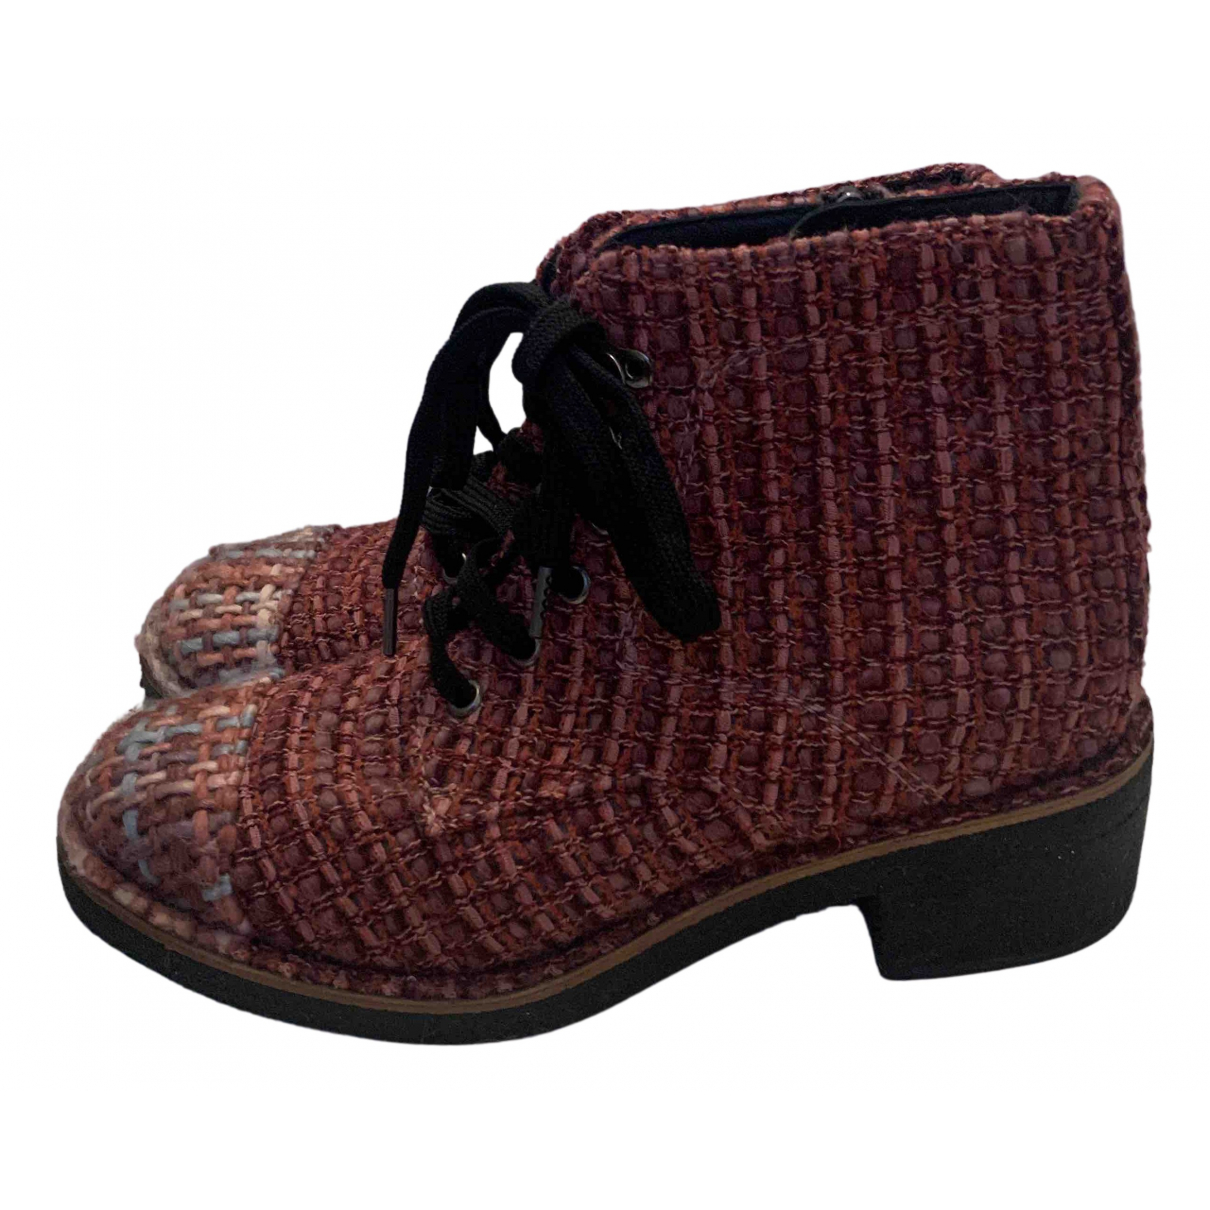 Chanel N Pink Tweed Ankle boots for Women 37.5 EU